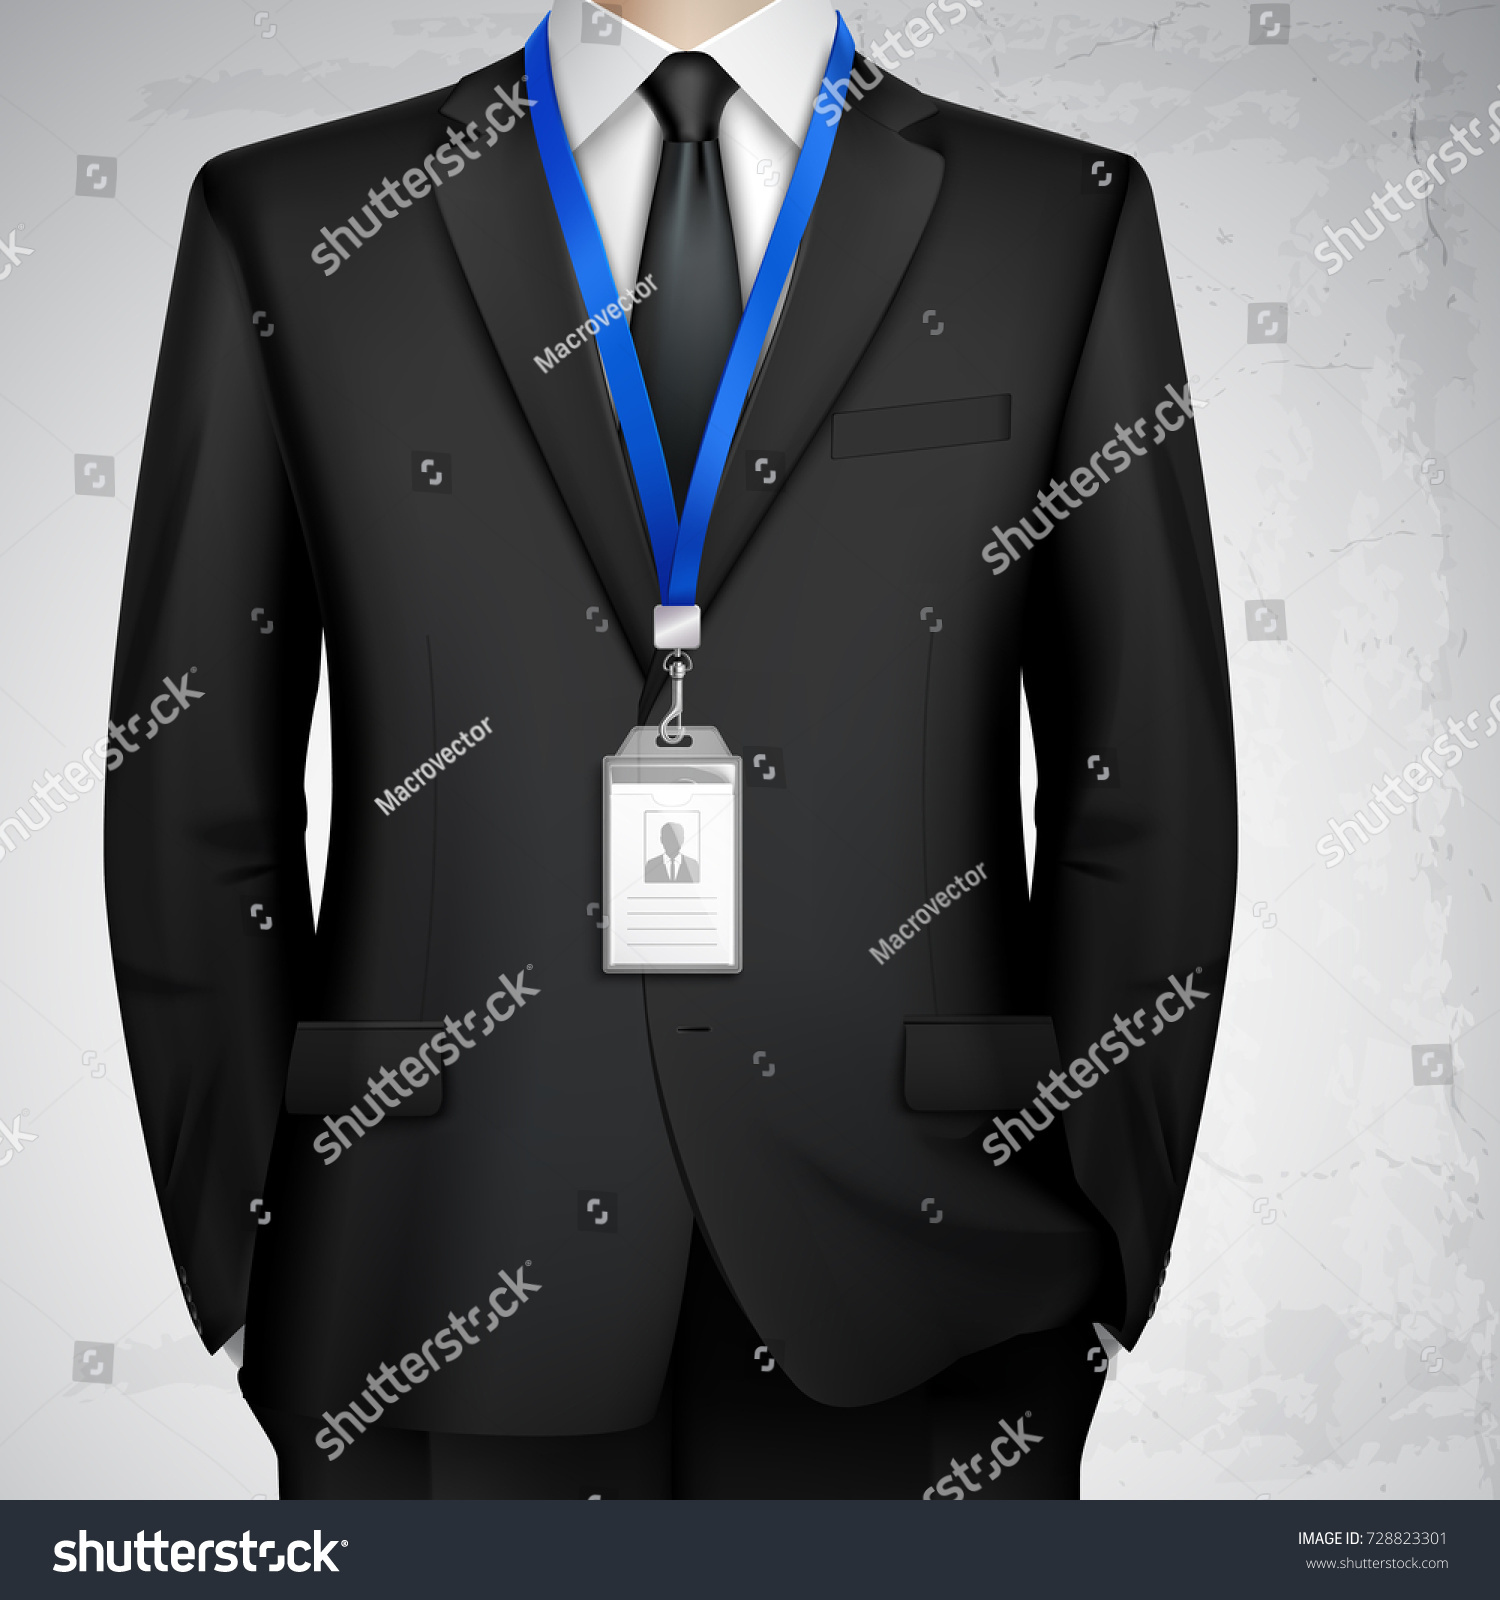 To acquire Wear to what id photo picture trends